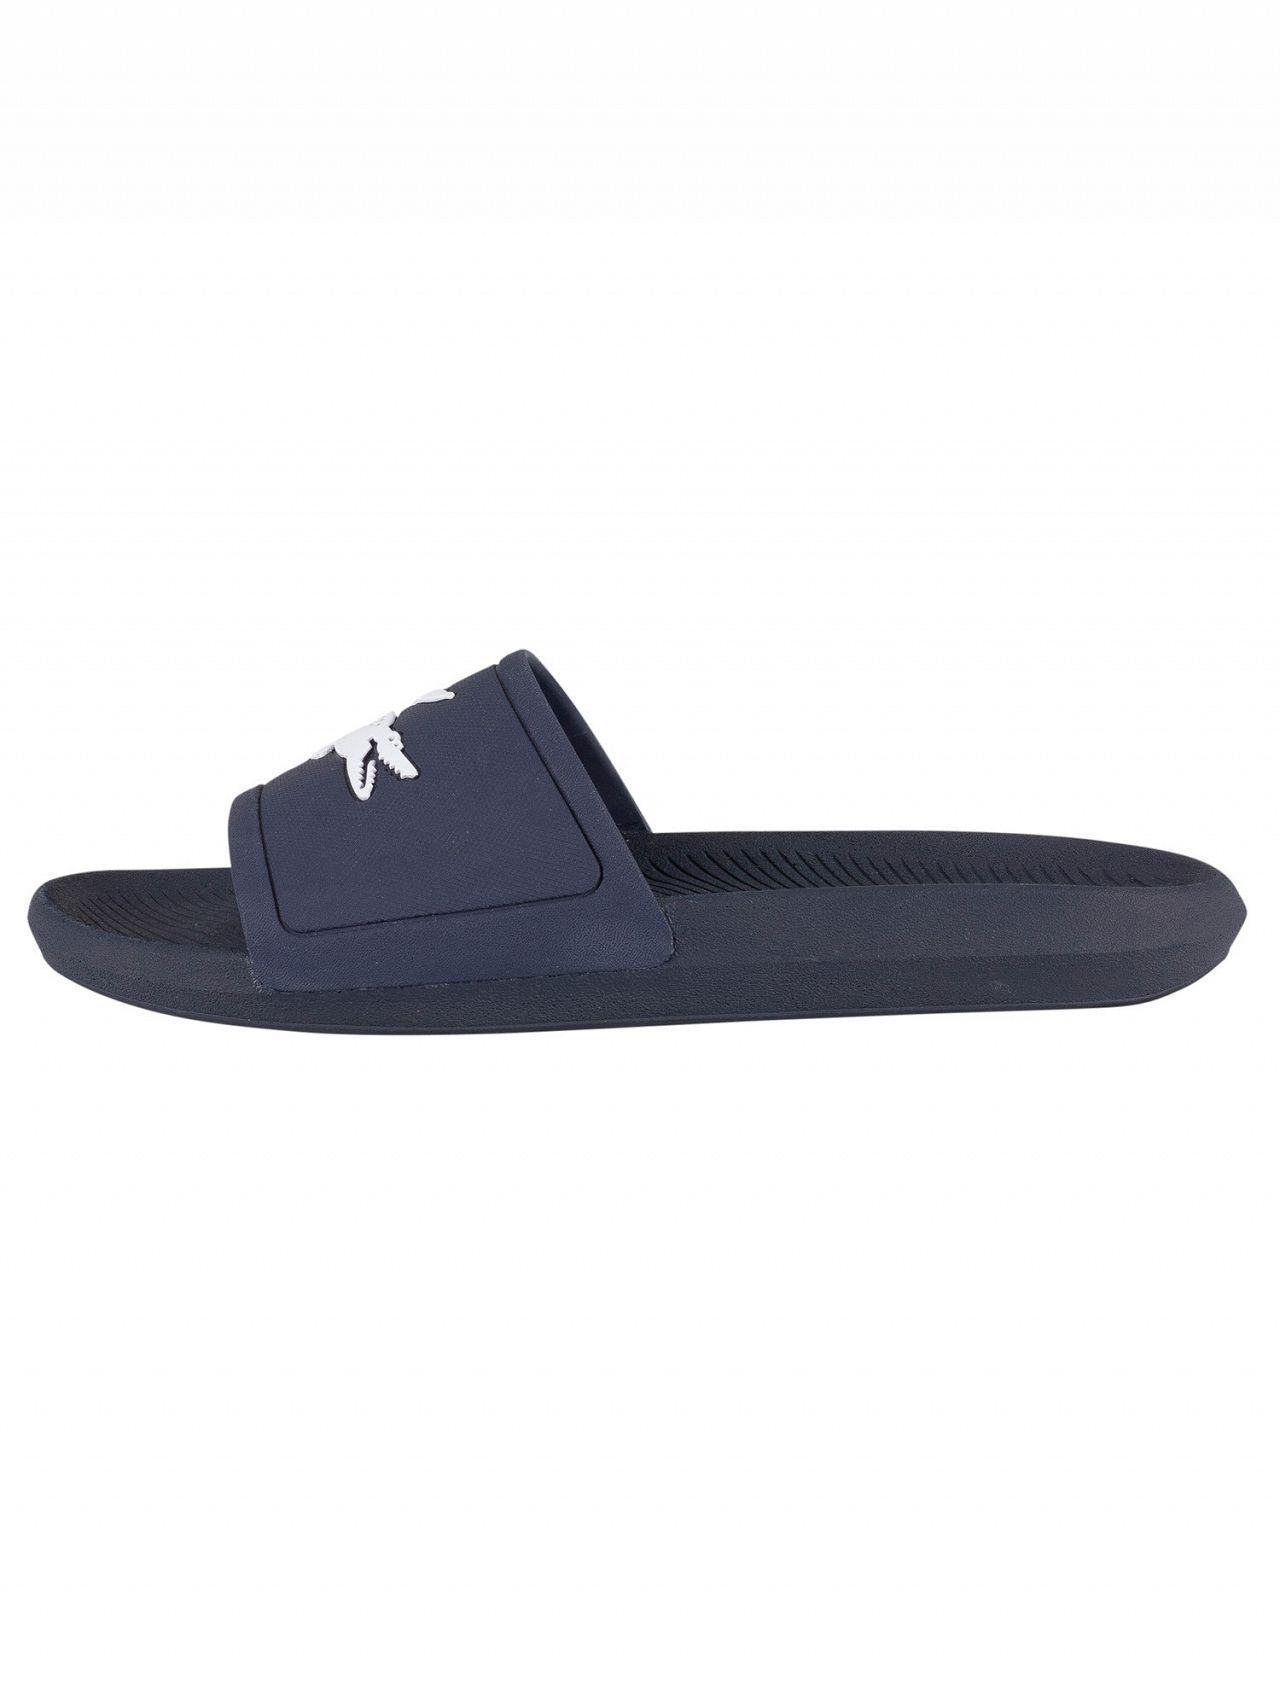 48865f06b156 Lyst - Lacoste Croco Slide 119 1 Sandals in Blue for Men - Save 9%